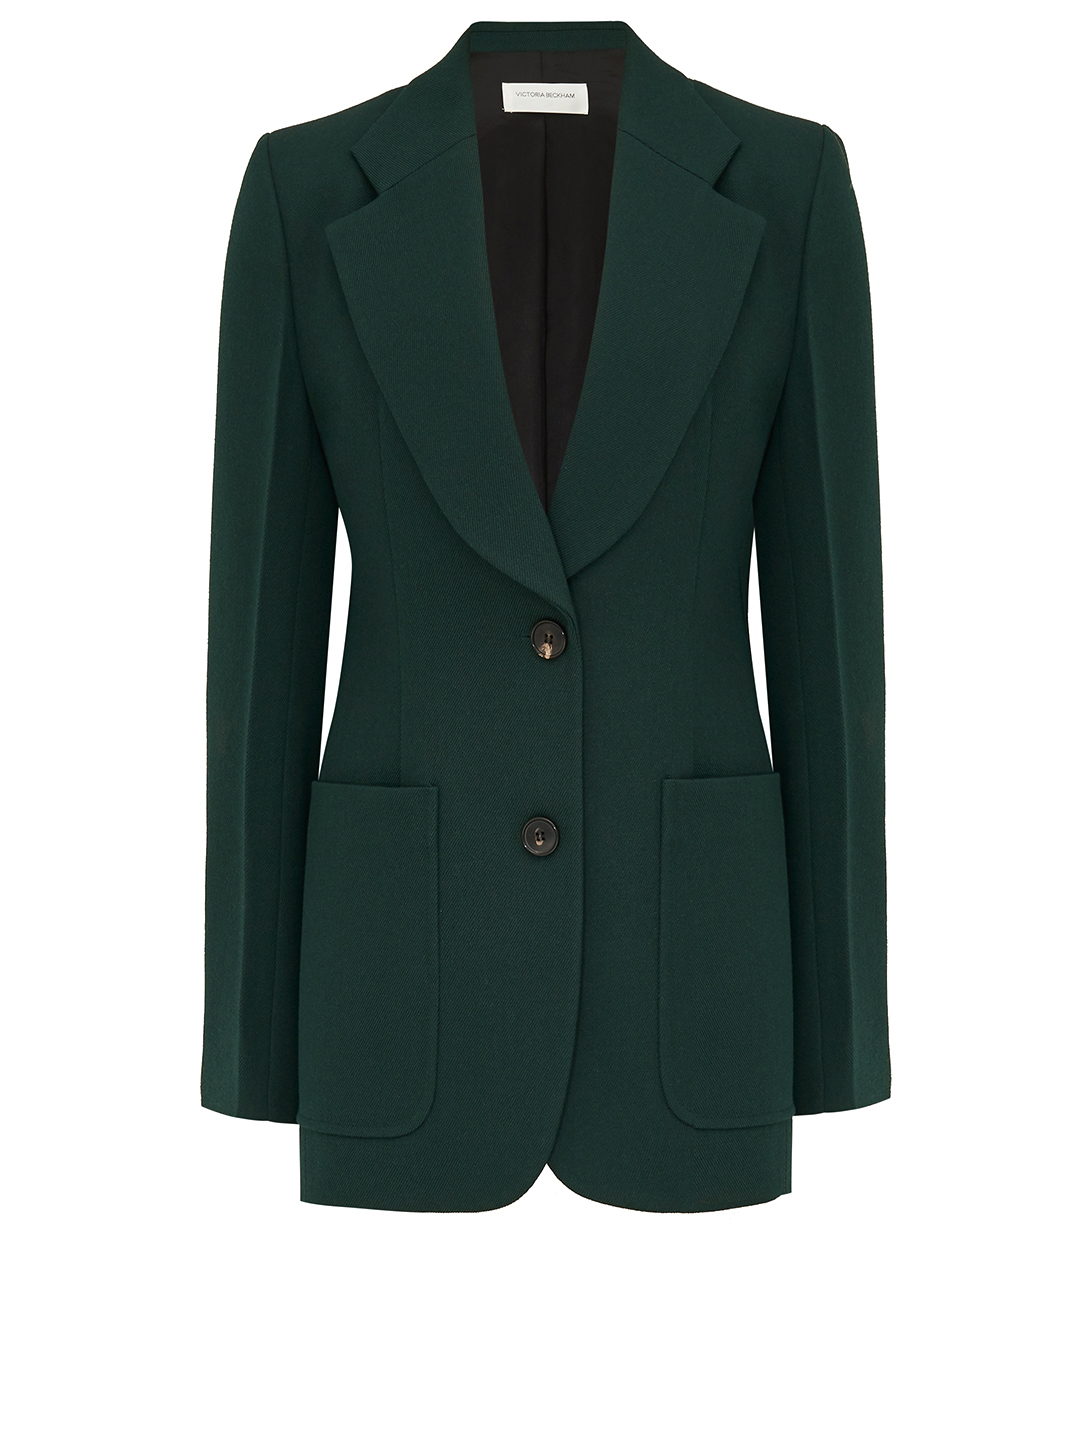 VICTORIA BECKHAM Wool Patch Pocket Blazer Women's Green